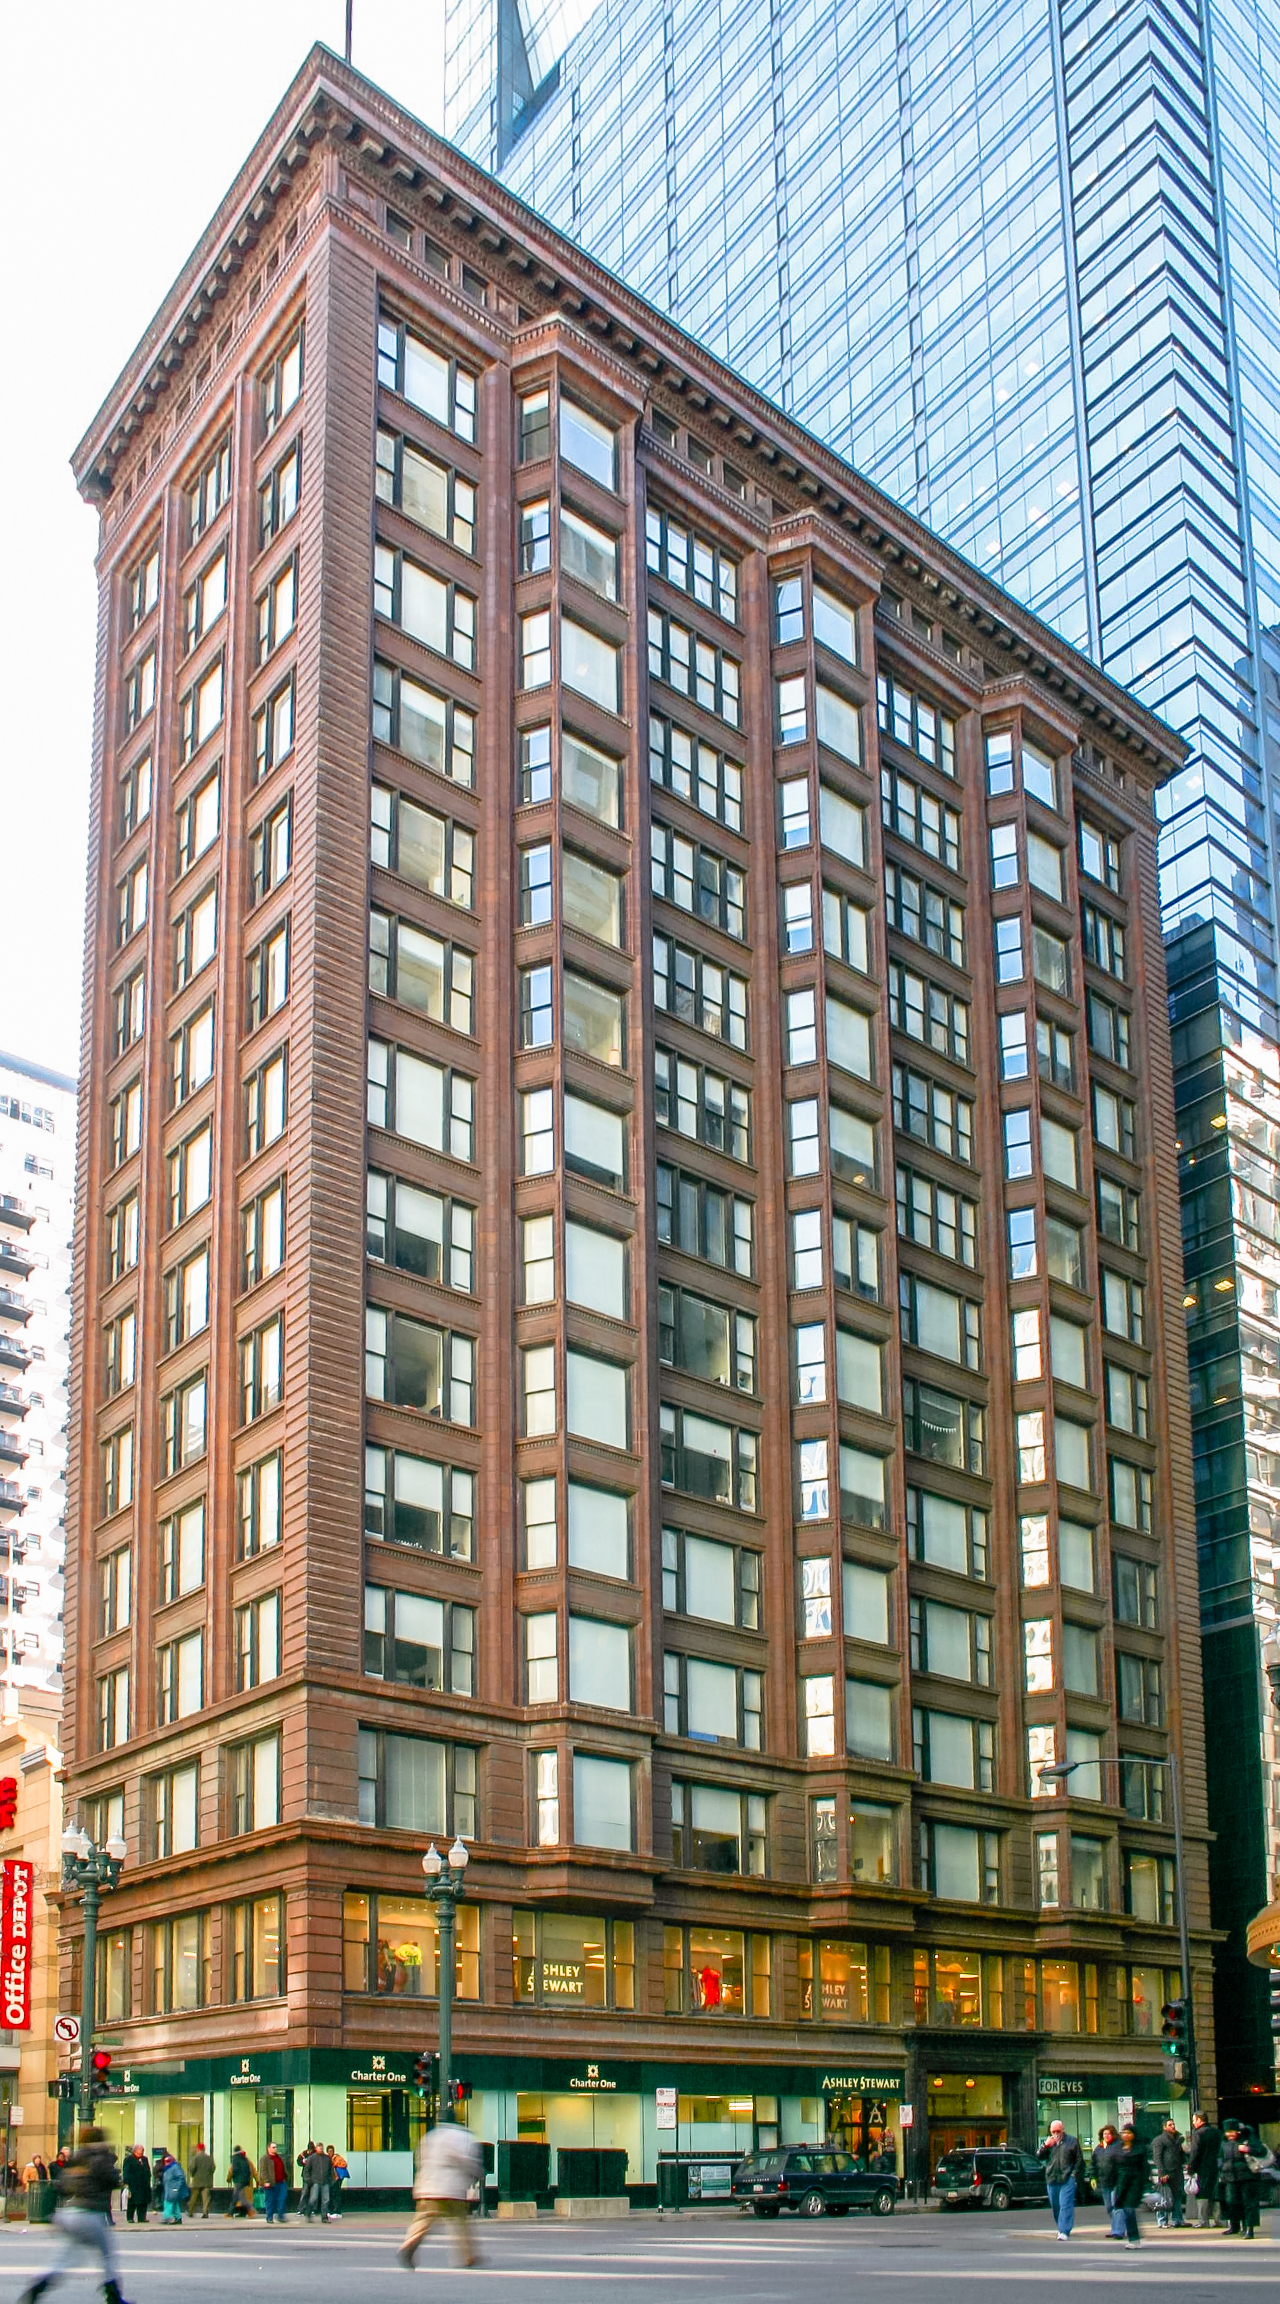 2010-03-03_1856x2784_chicago_chicago_building